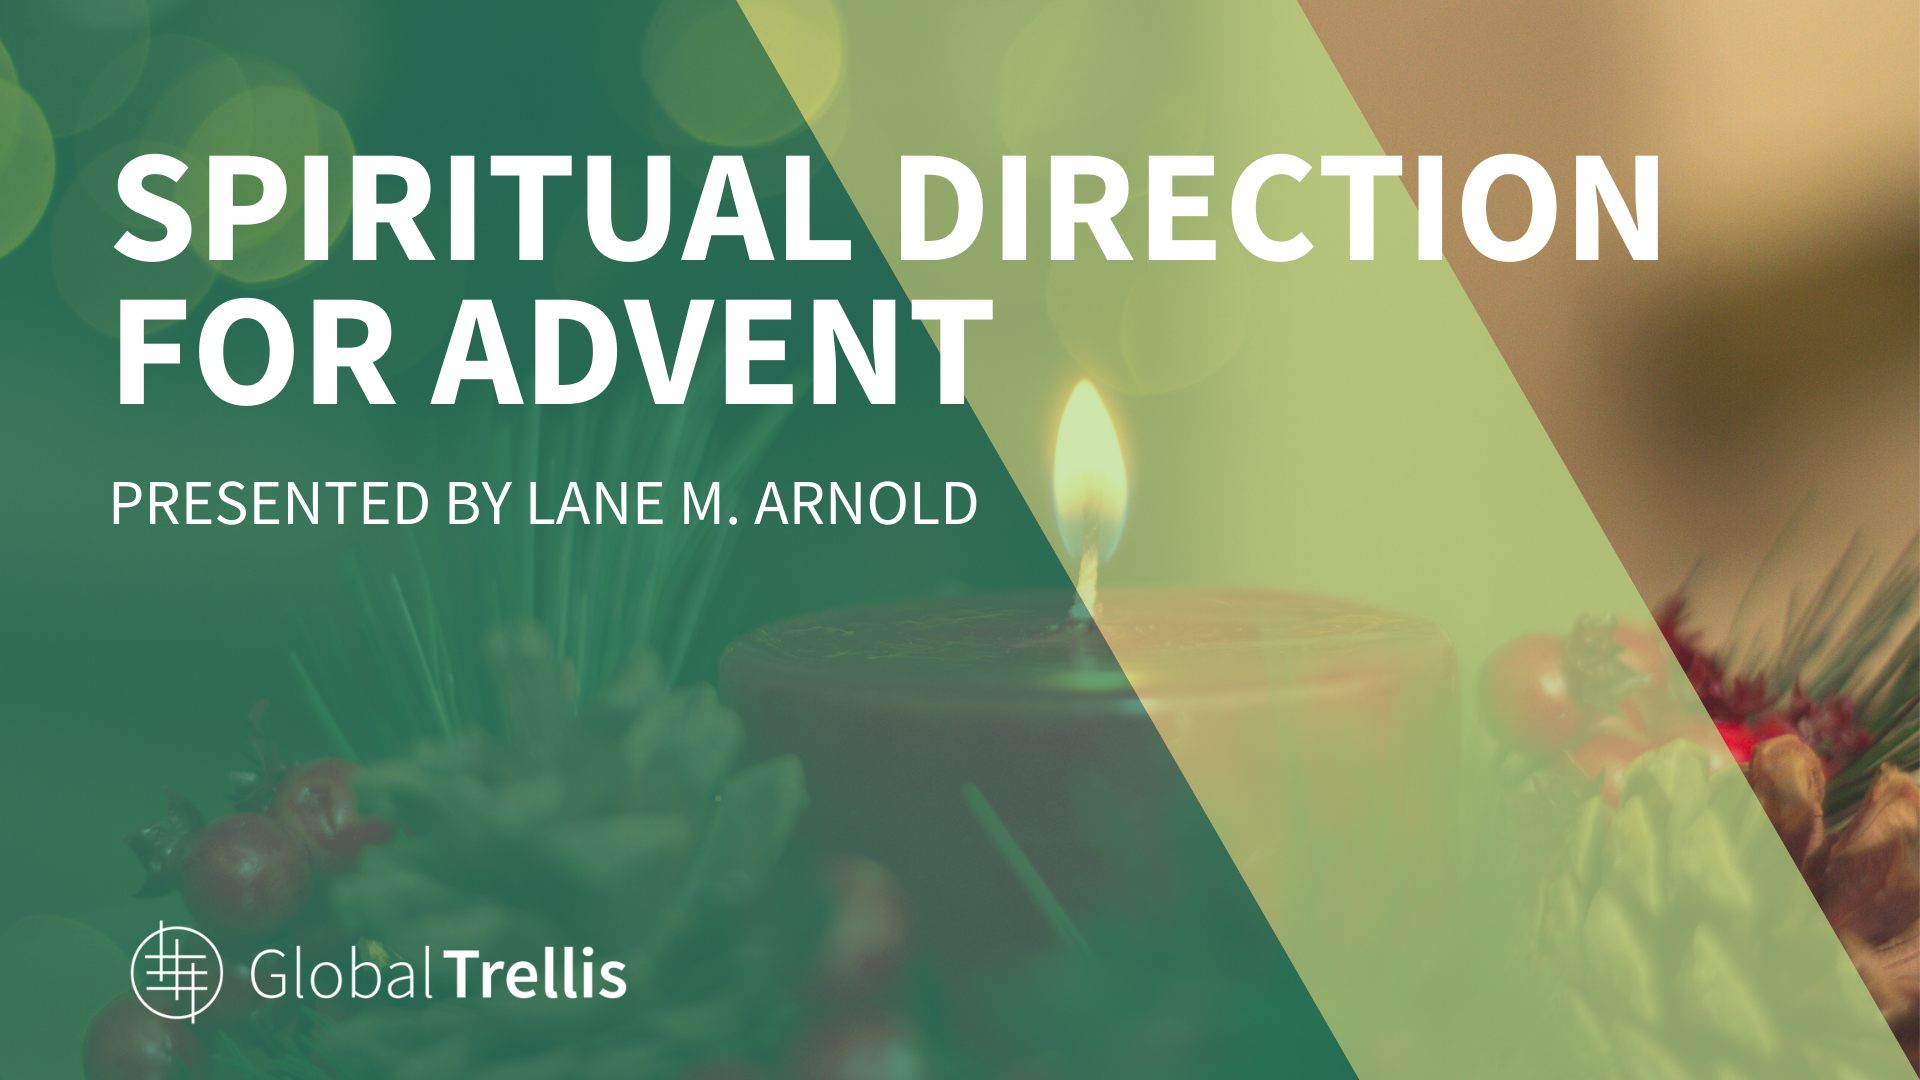 Spiritual Direction For Advent